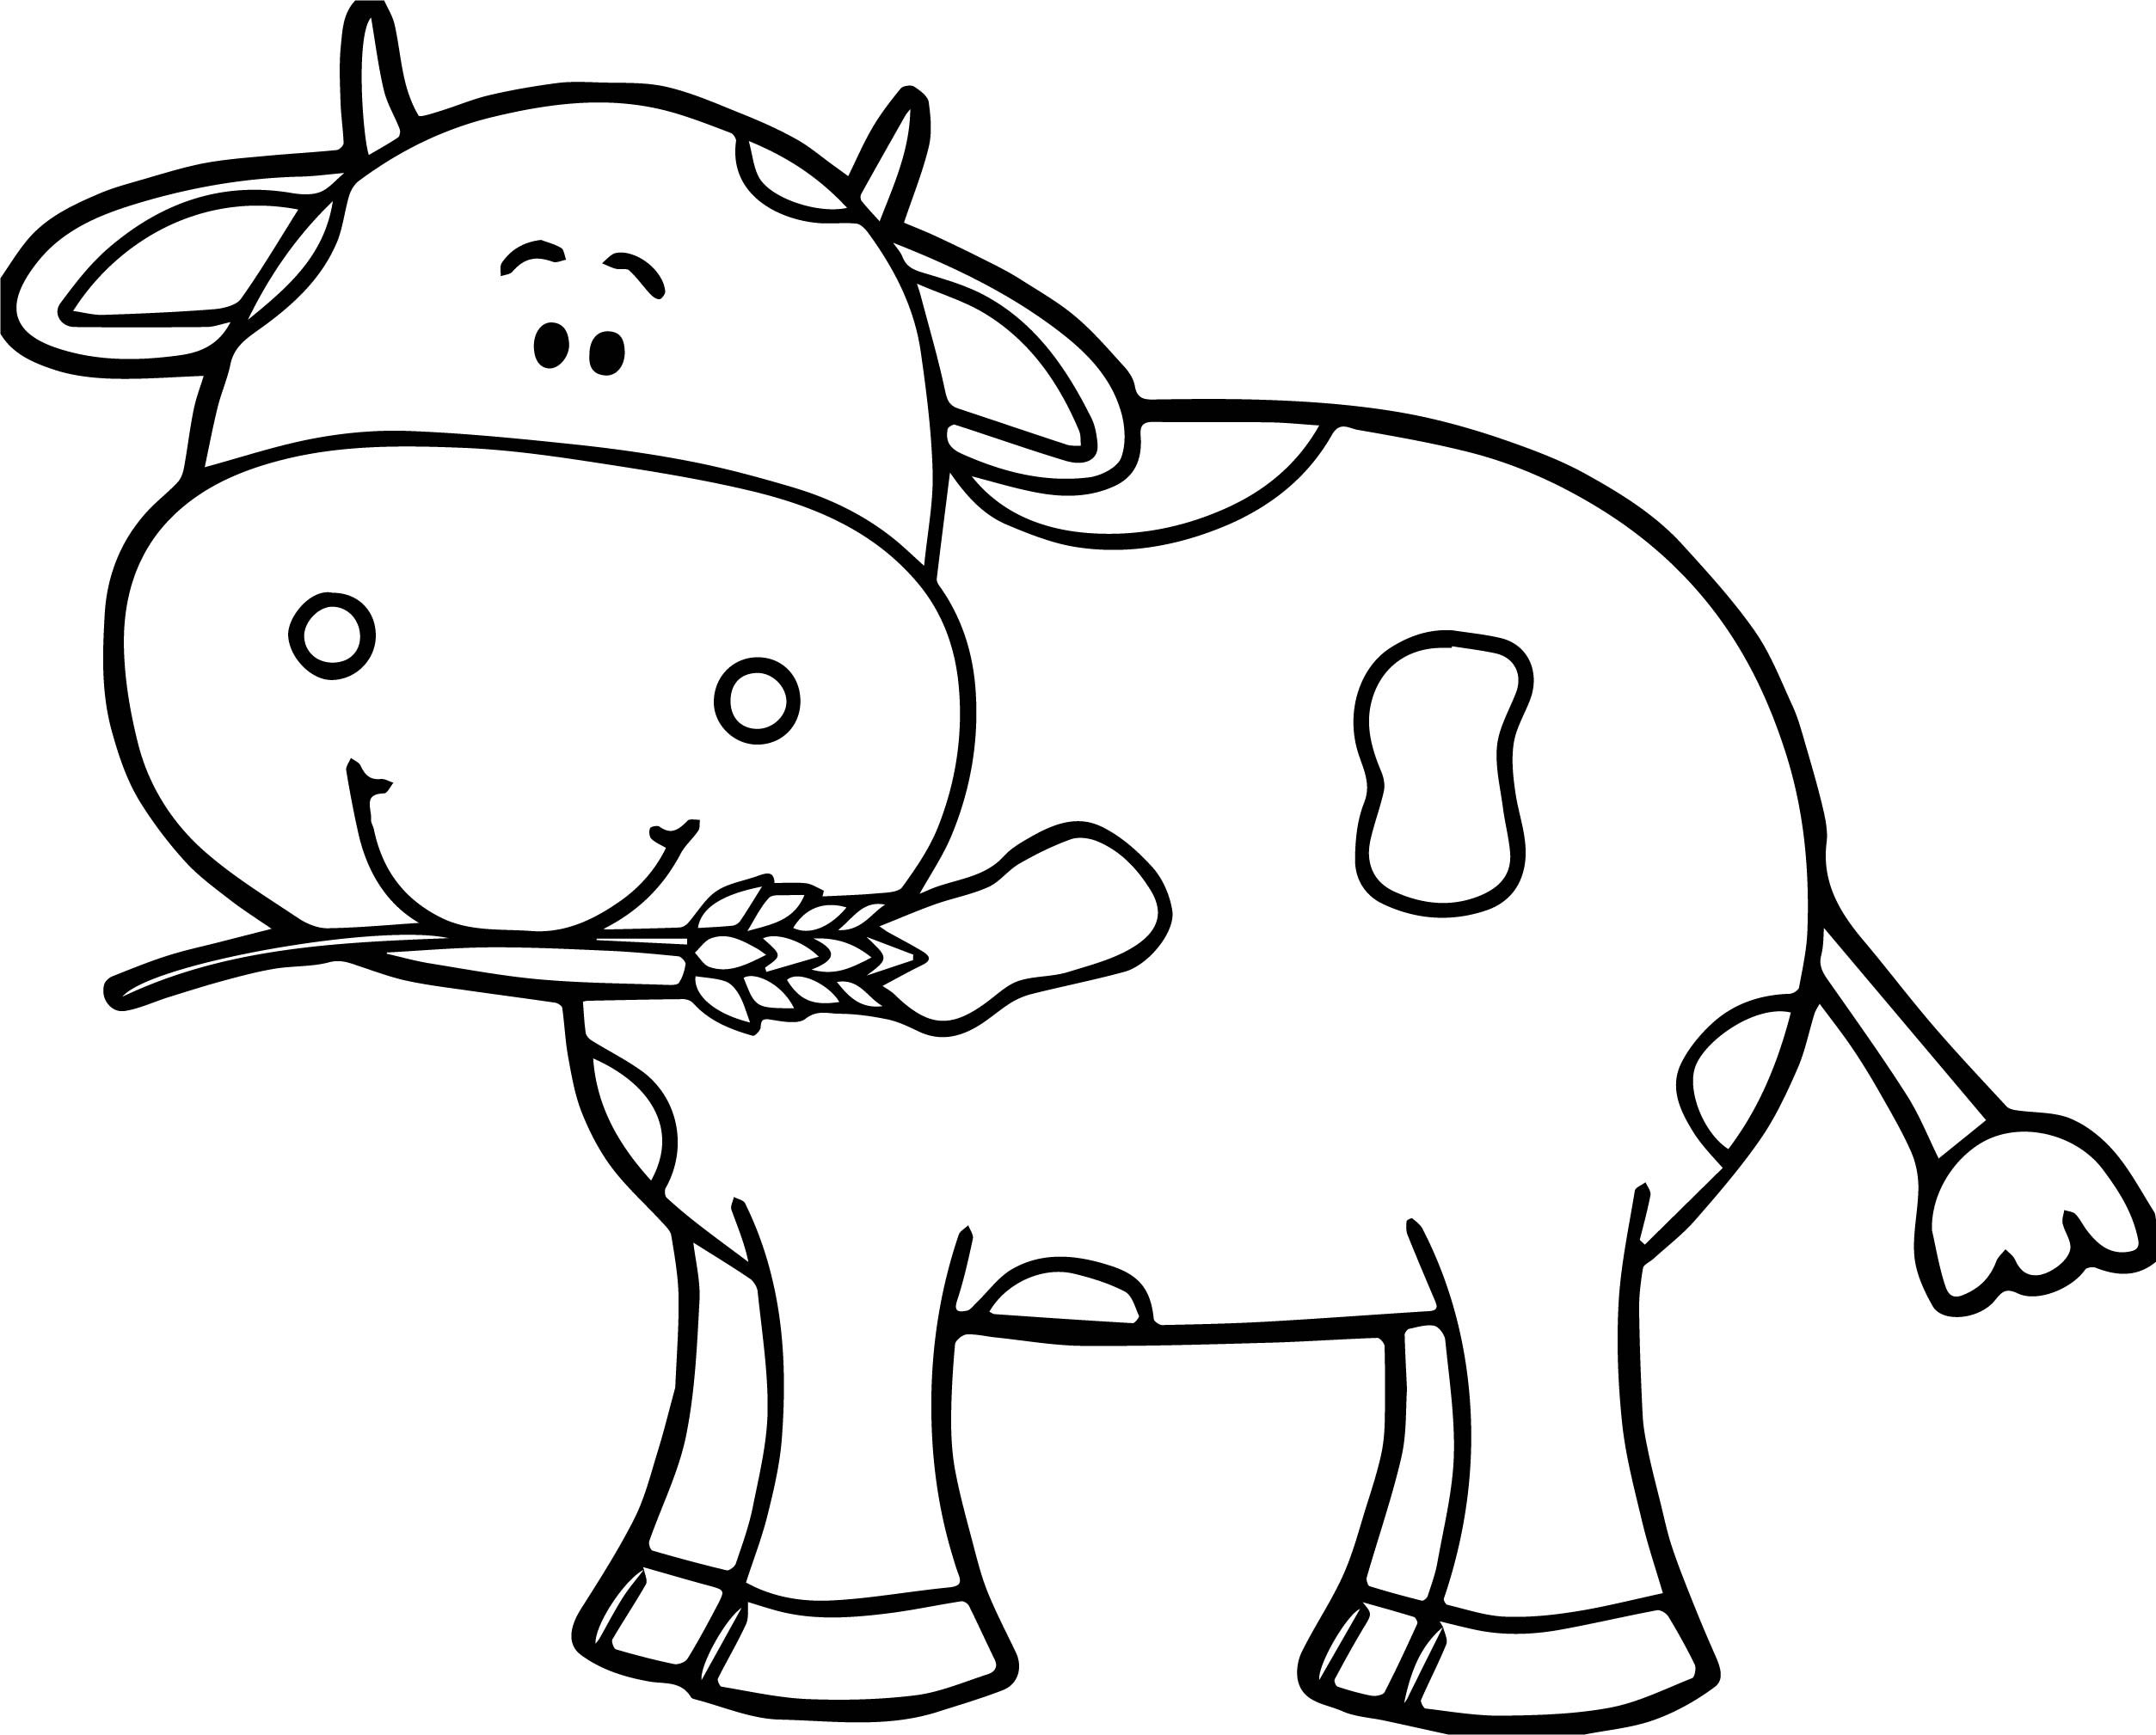 2507x2018 Chick Fil A Coloring Pages Inspirational Jersey Dairy Cattle